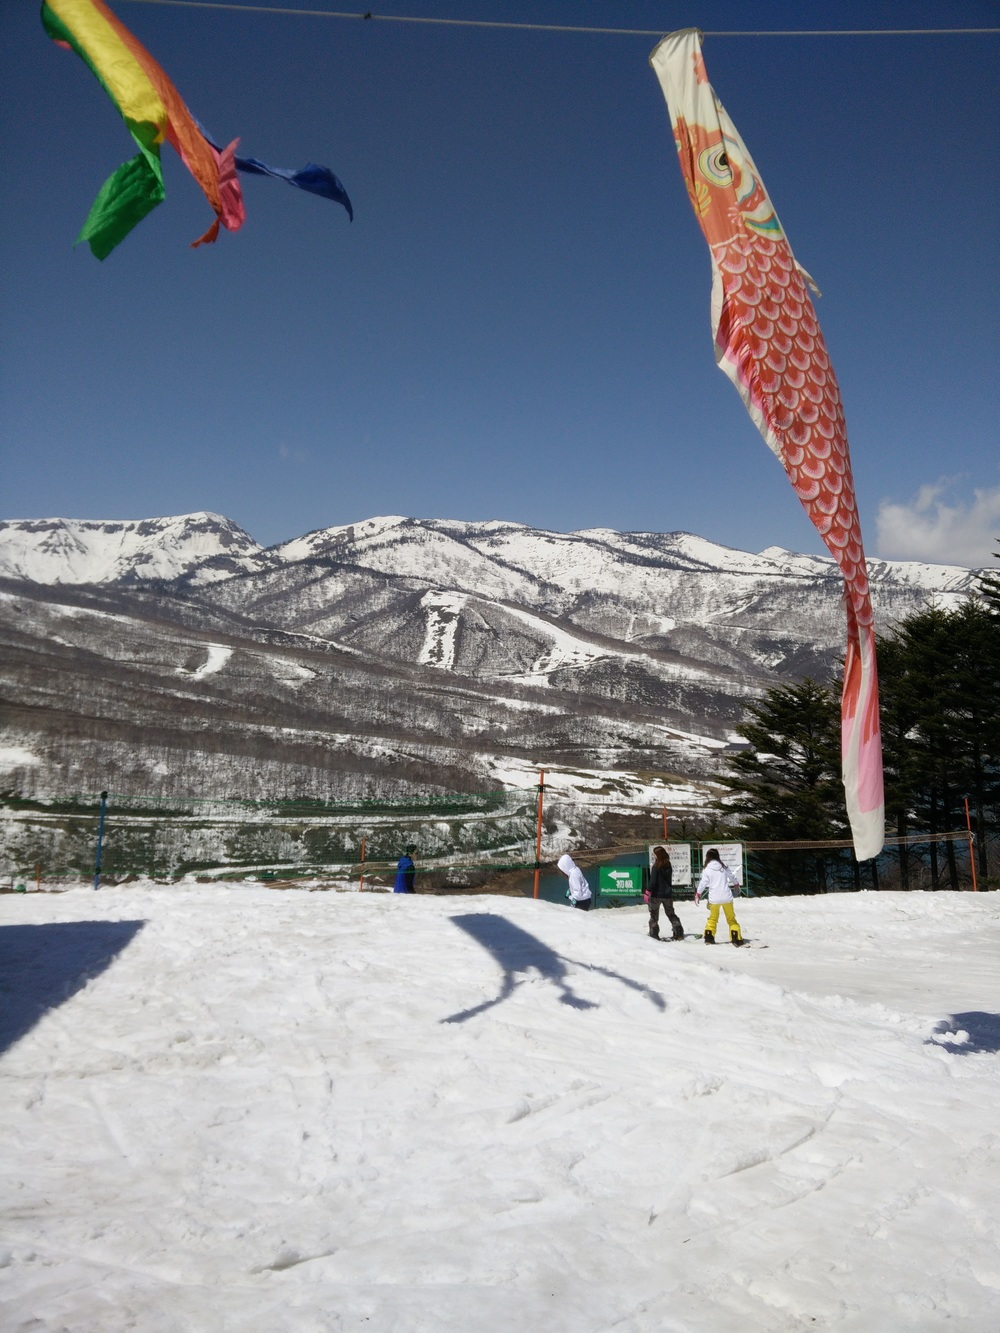 Spring skiing at the Kagura area from the top of the Tashiro Ropeway